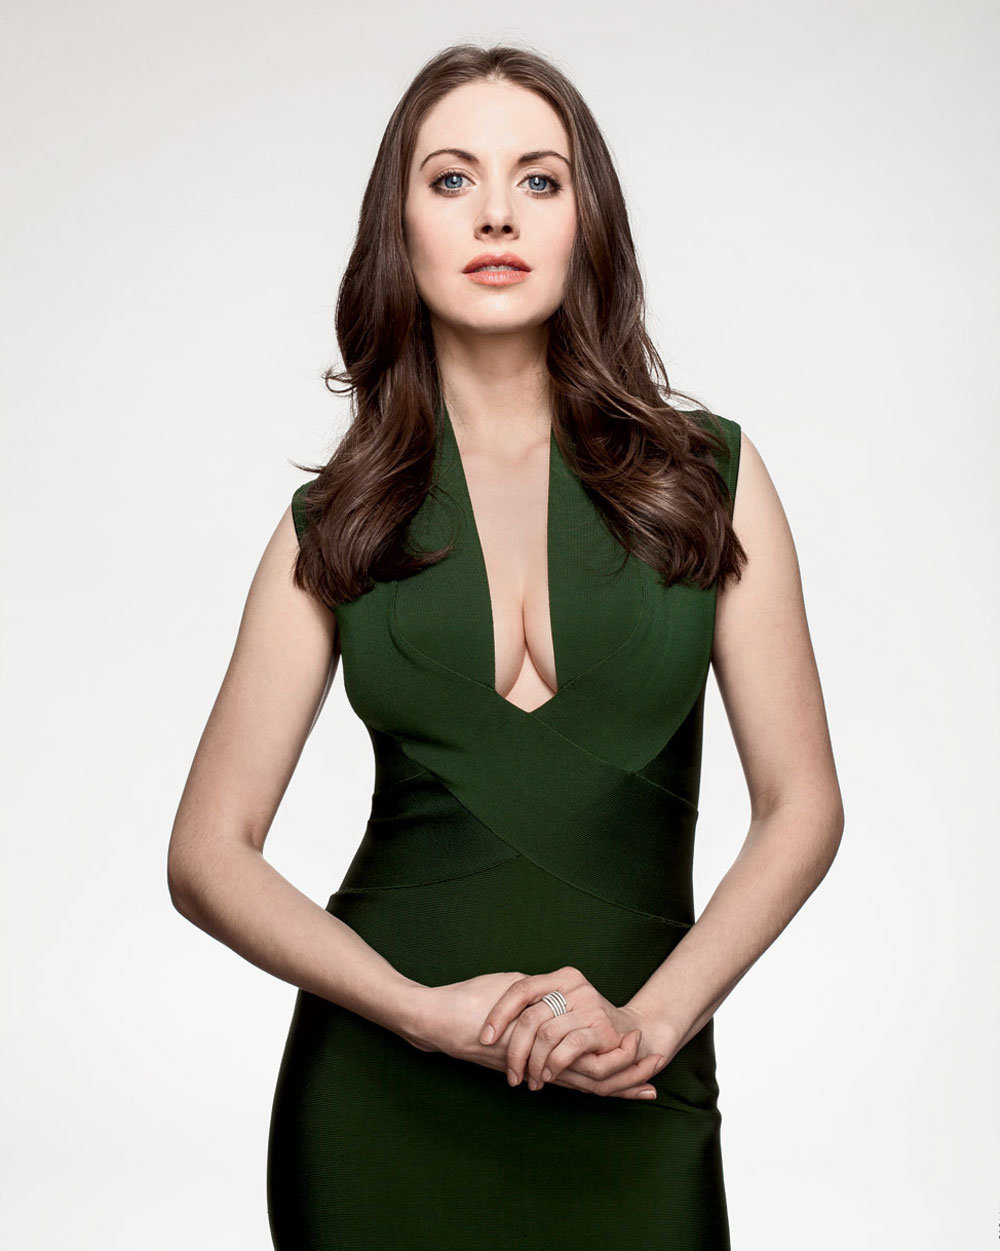 imsy4hz - 52 photos of beautiful alison brie